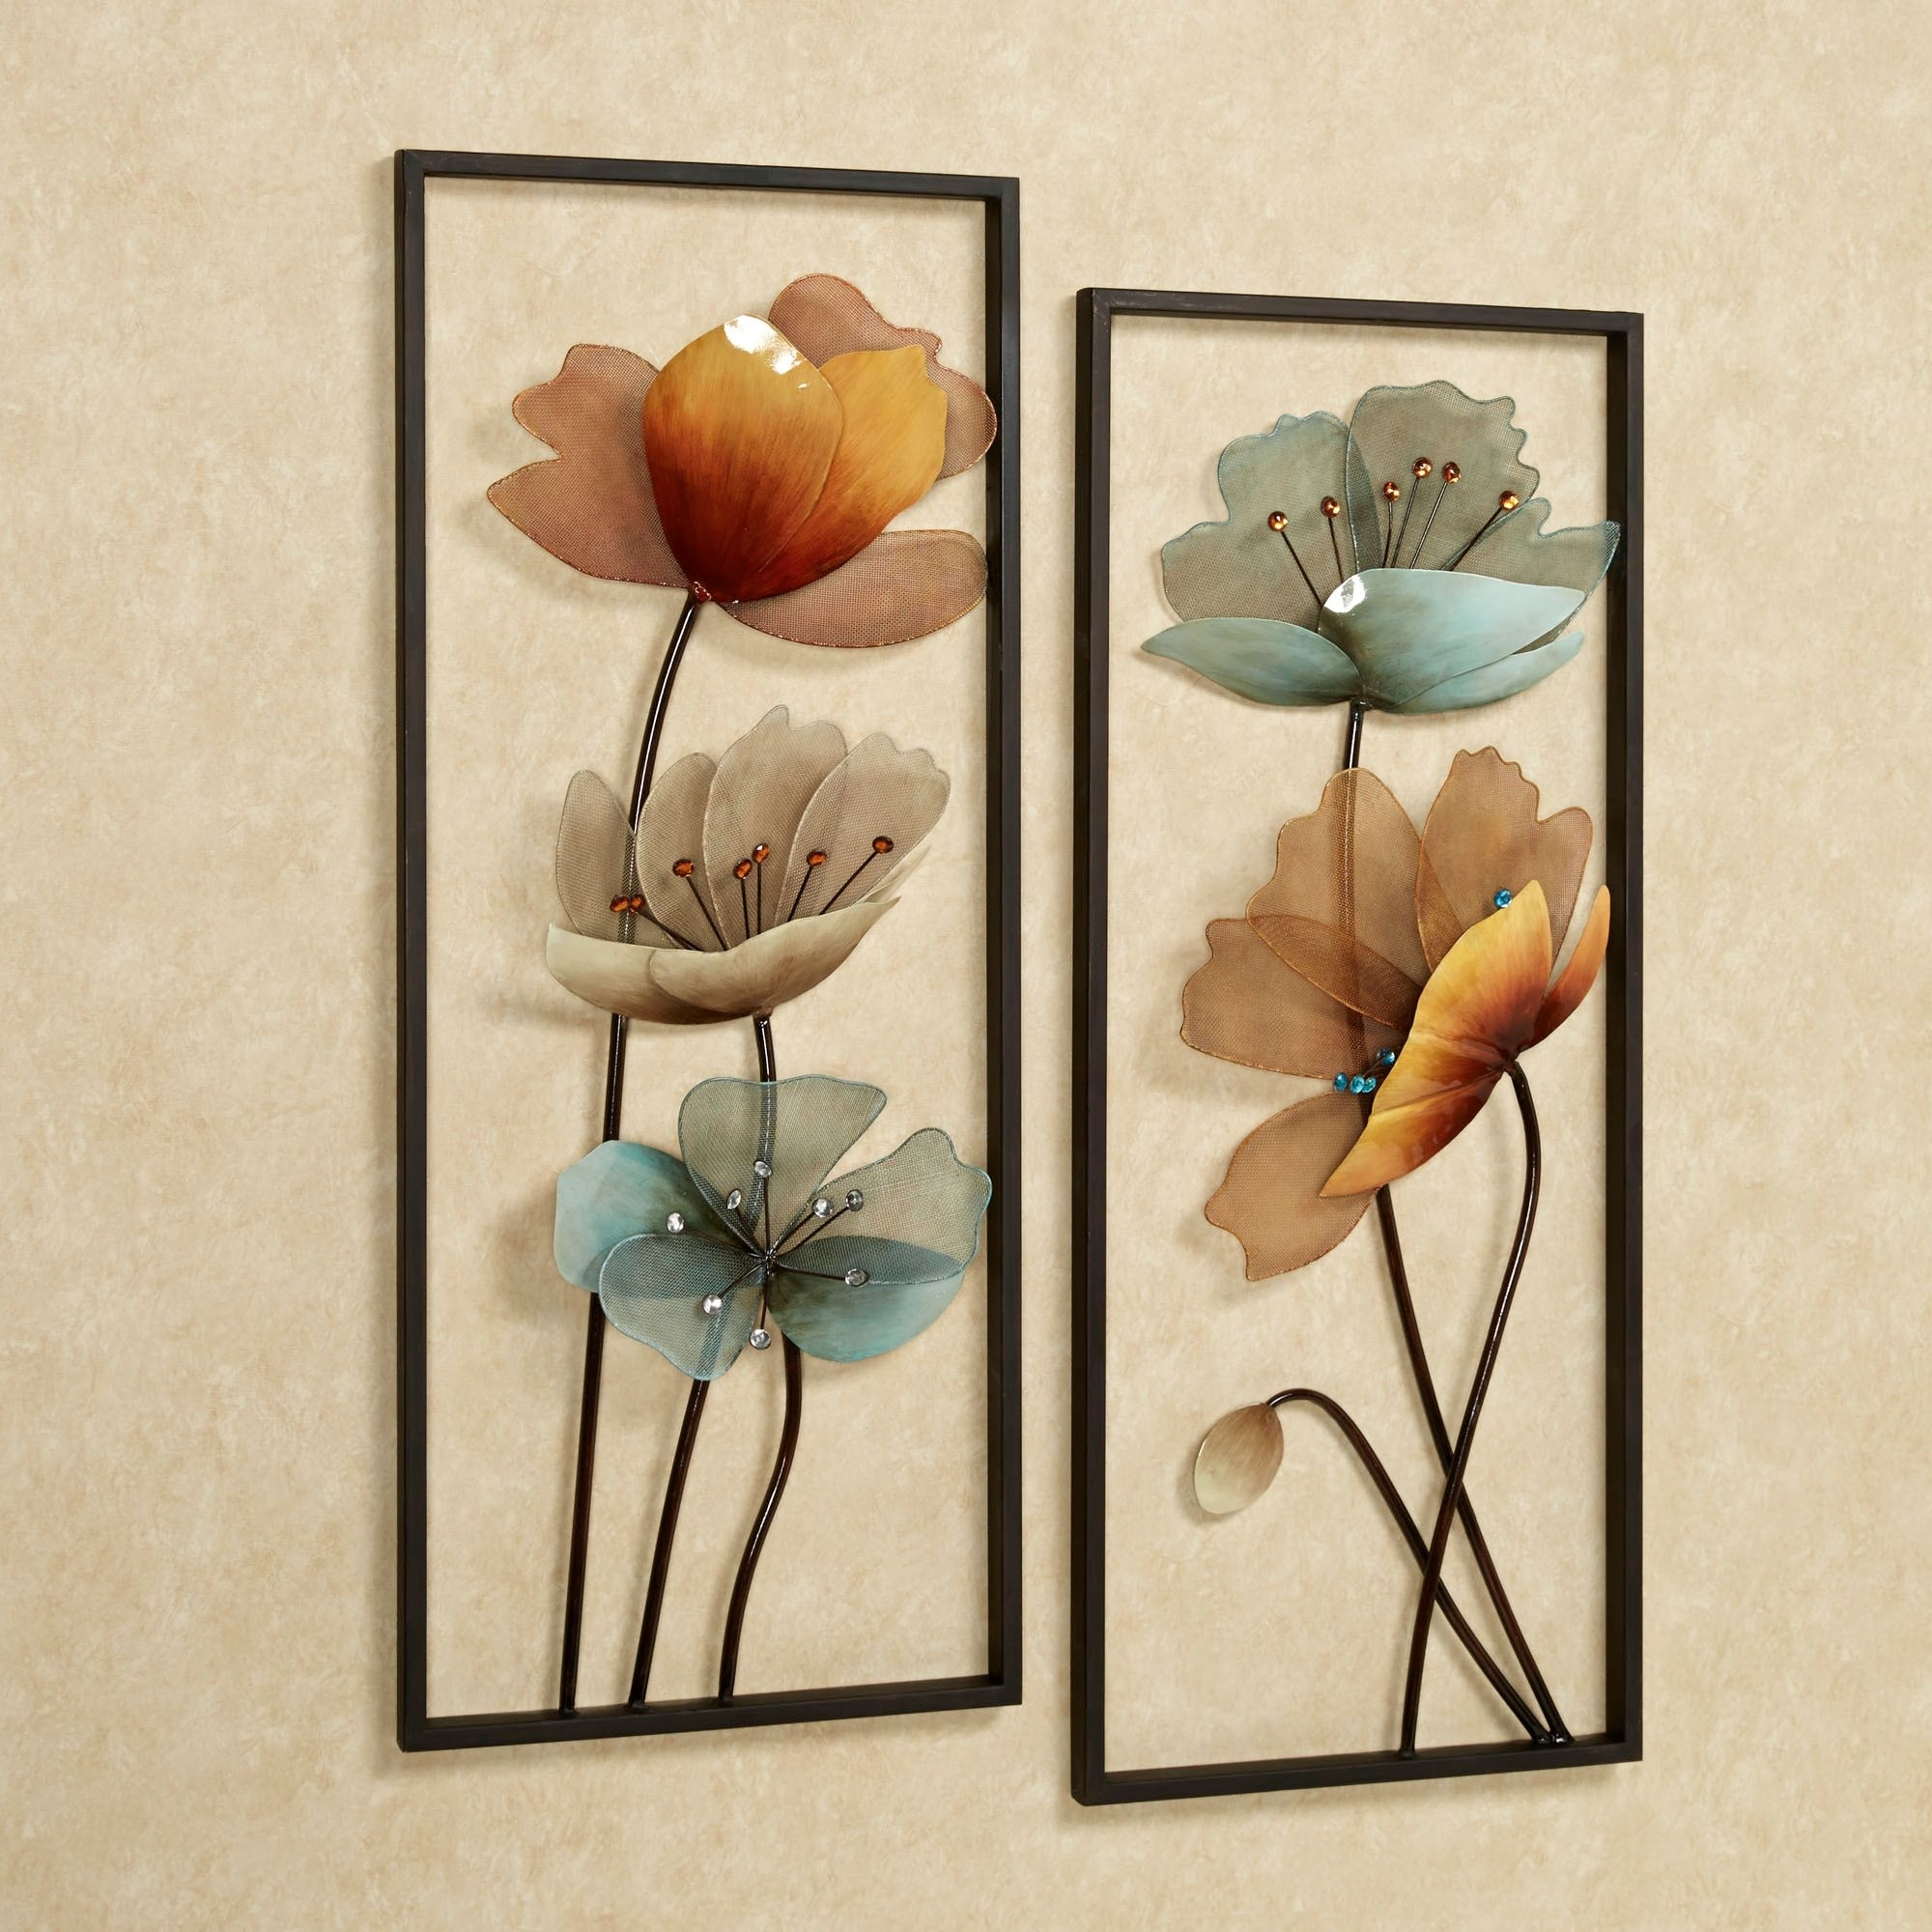 Glamorous Metal Wall Accents With Art For Modern Home For Recent Metal Wall Accents (View 11 of 15)